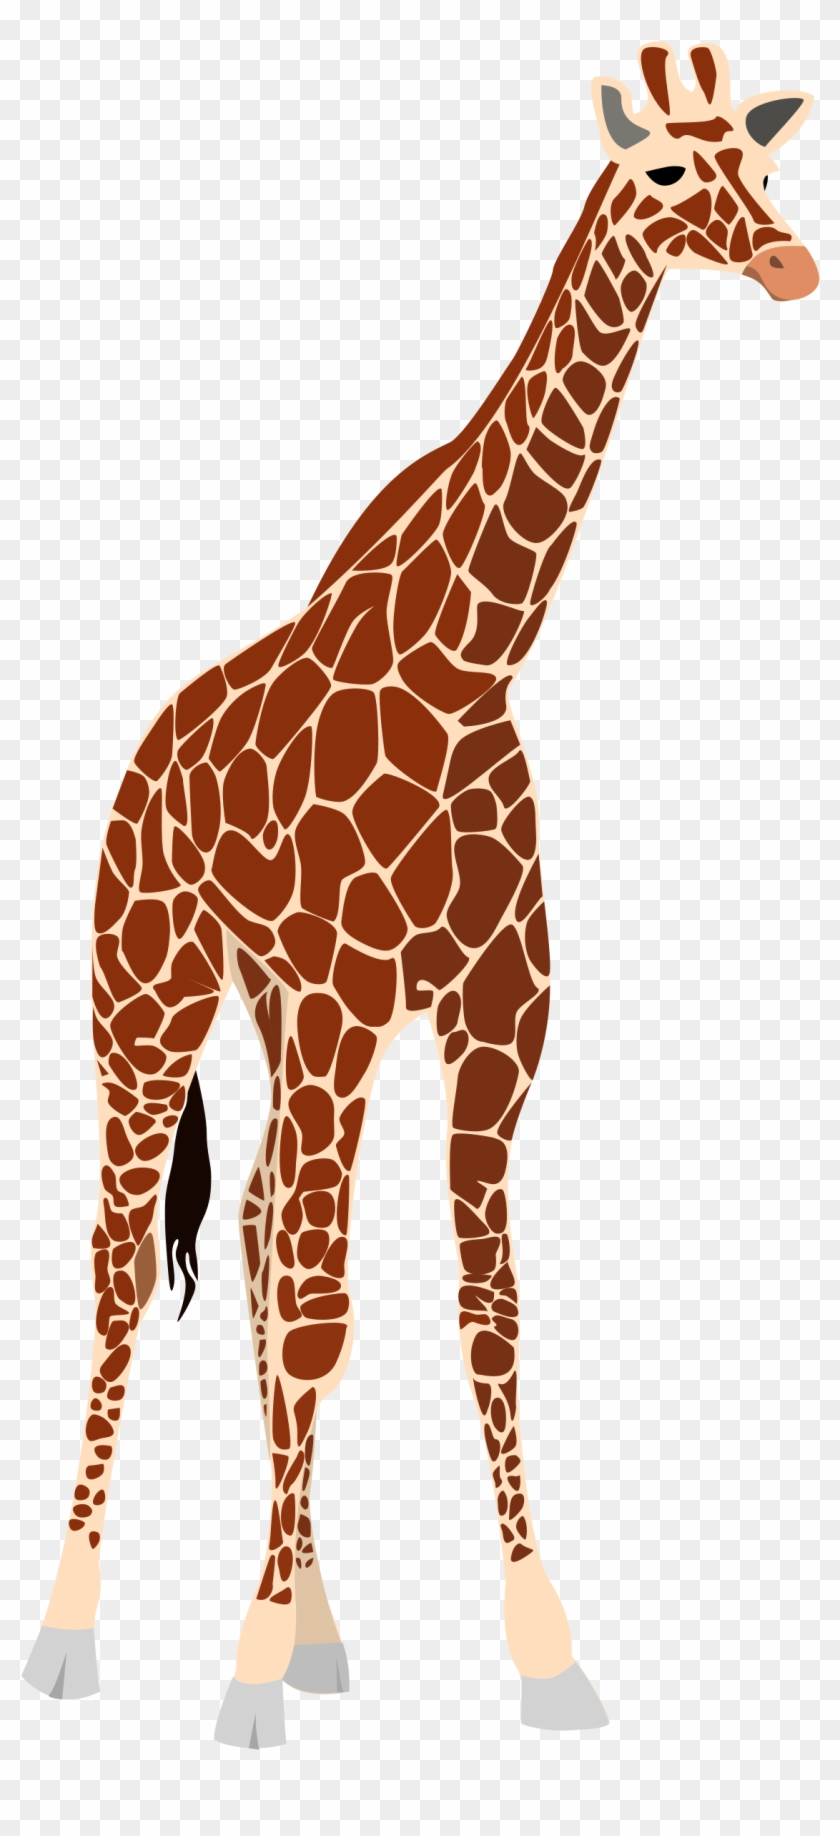 Giraffe clipart realistic.  png freeuse stock